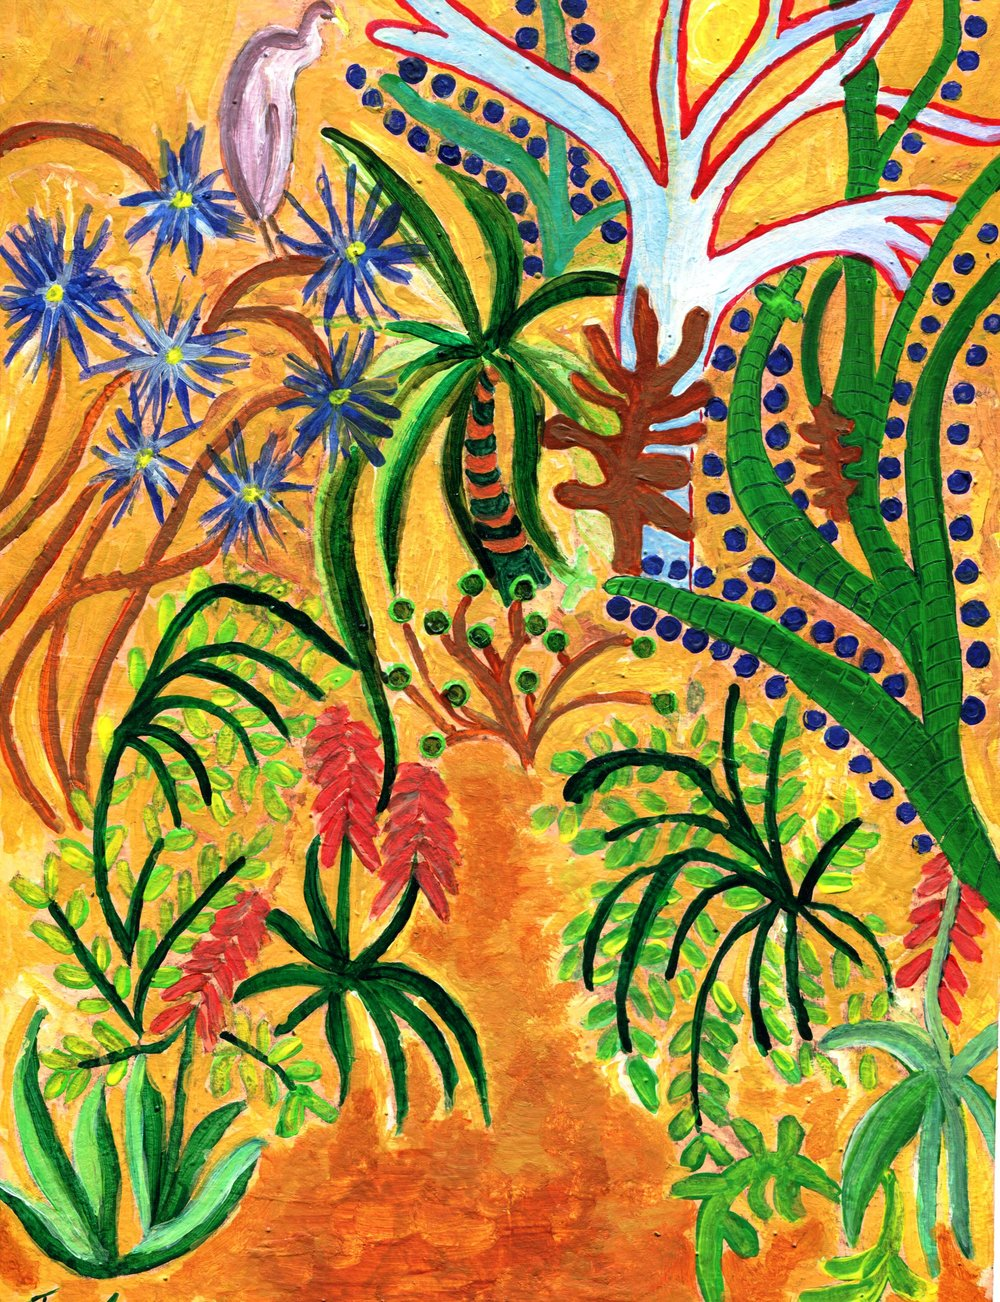 22A JACQUELINE EDWARDS,GENTLE JUNGLE, ACRYLIC ON CARD